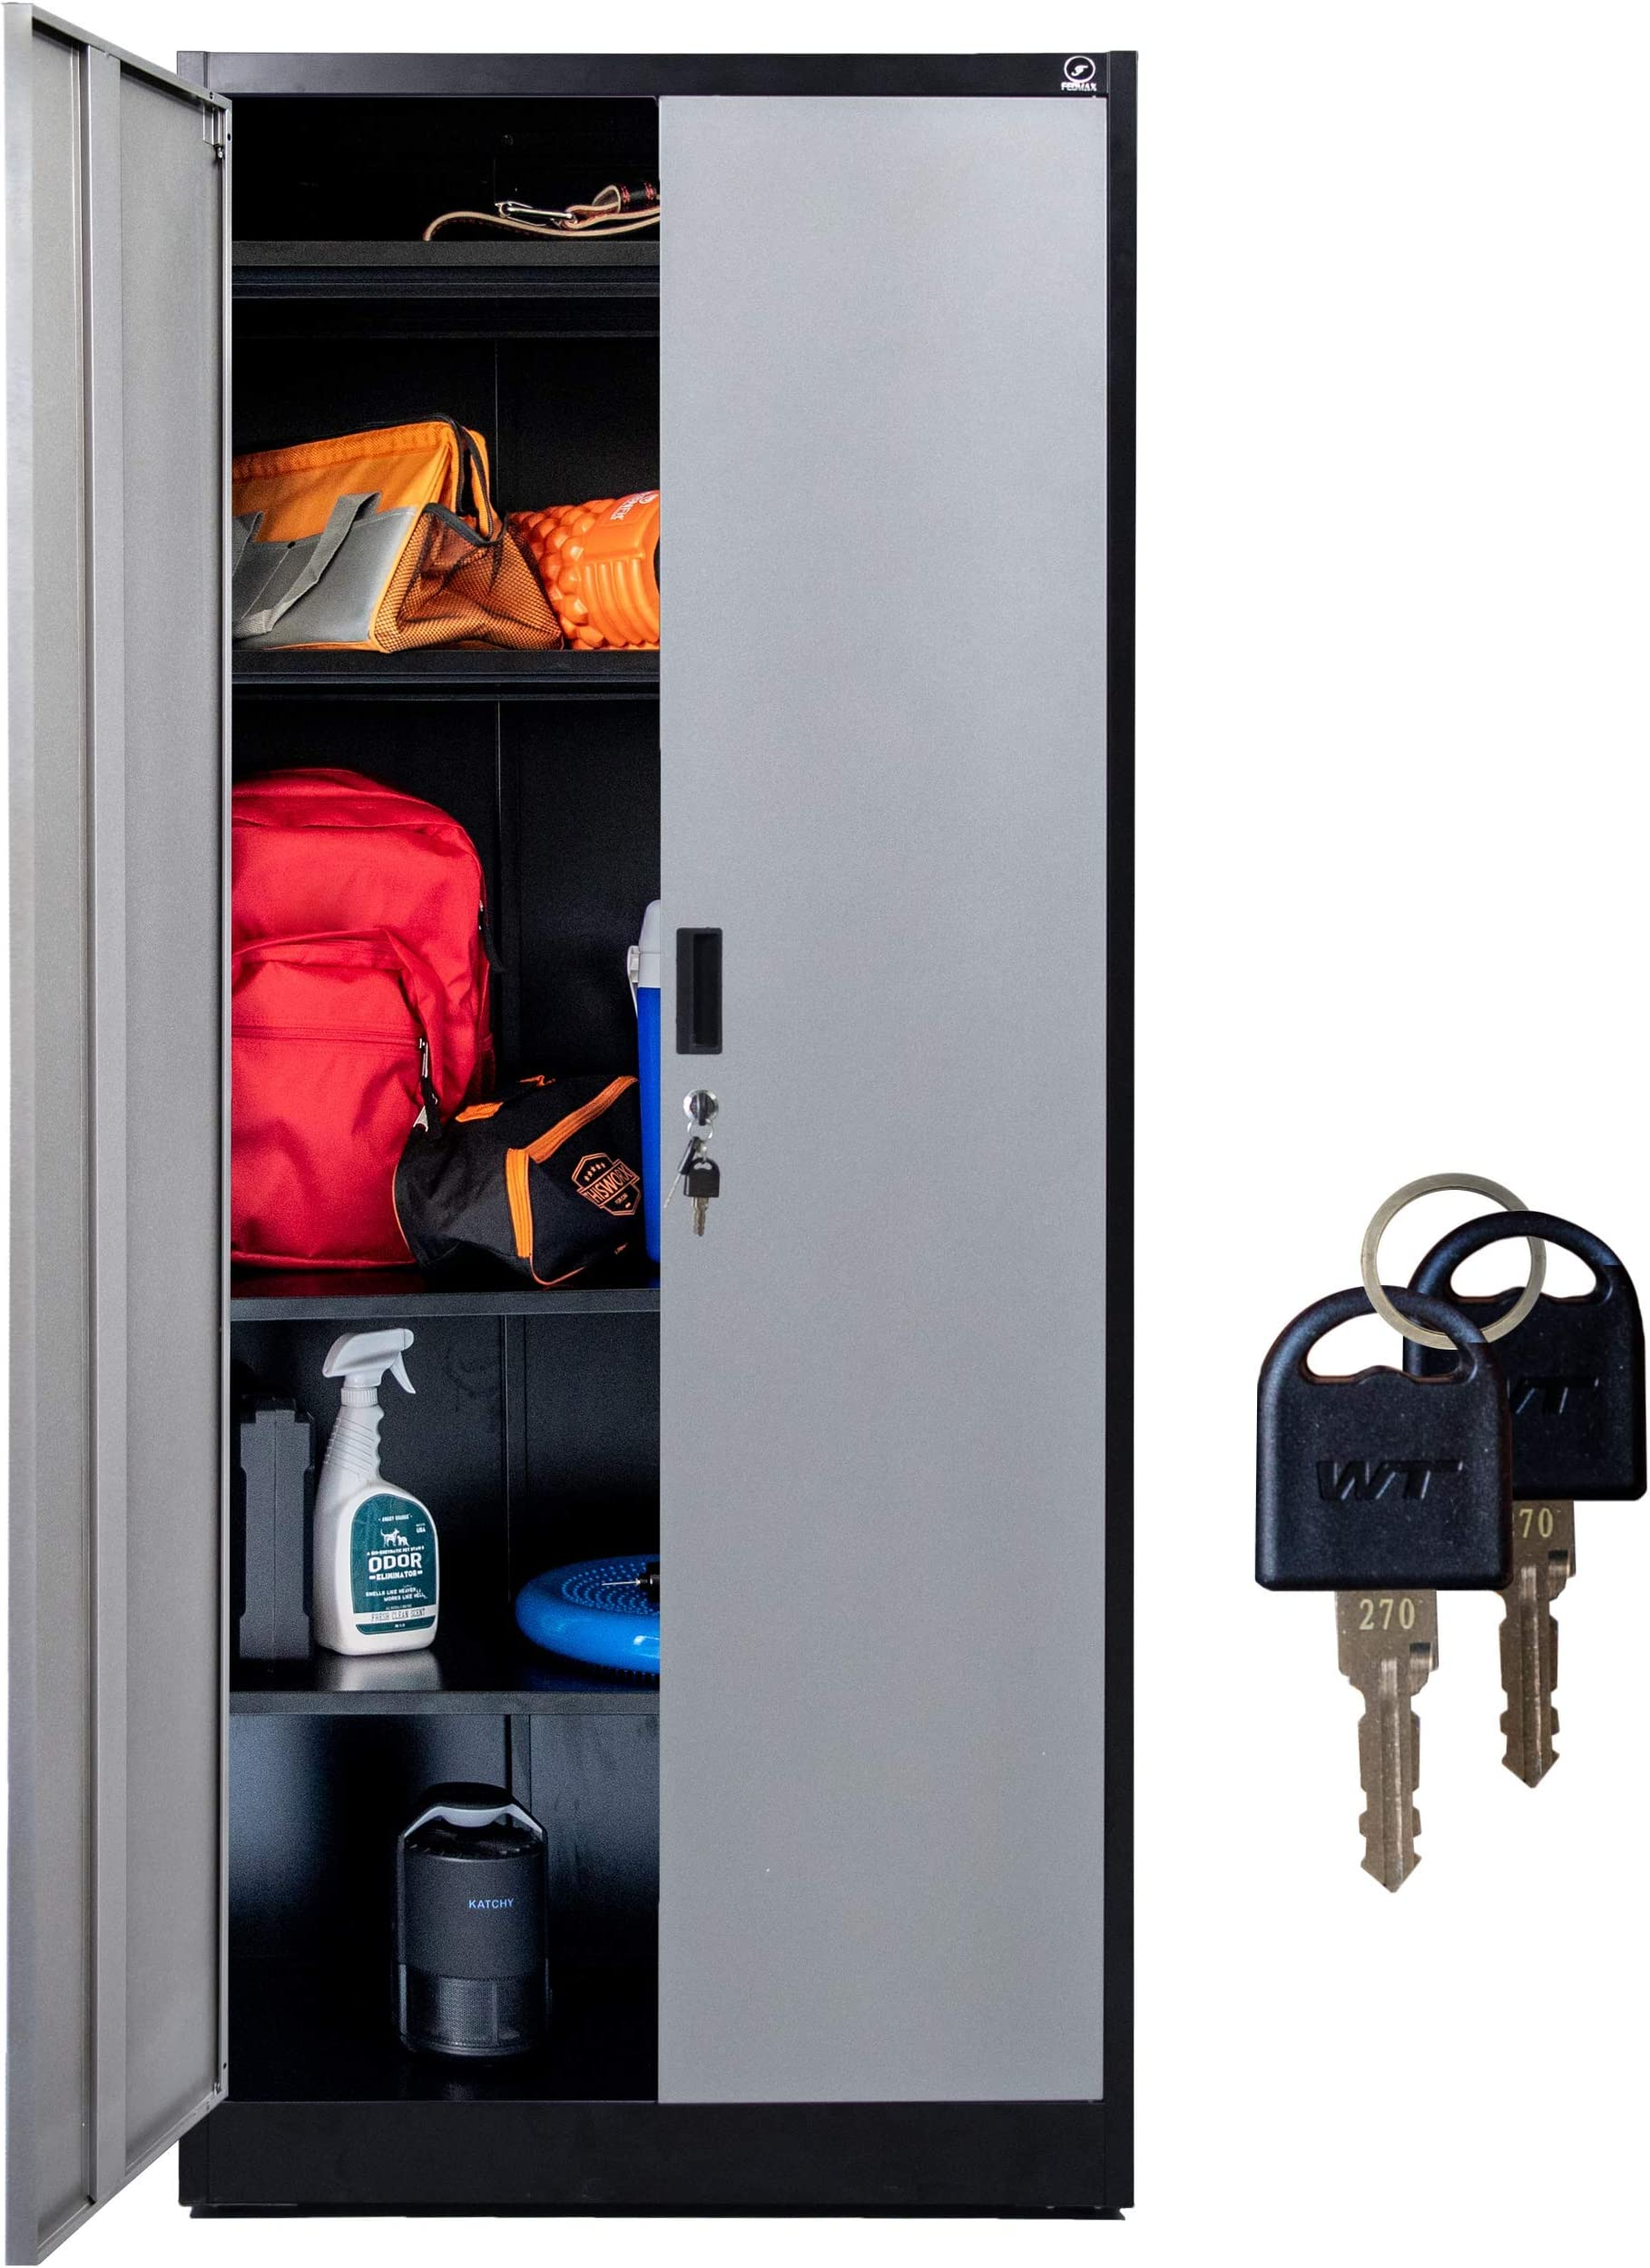 """Fedmax Metal Storage Cabinet - 71"""" Tall w/ Locking Doors & Adjustable Shelves - Steel Utility Cabinets For Garage, Office, Classroom, Kitchen Pantry -70.86"""" L x 31.5"""" W x 15.75"""" D   Black/Gray"""